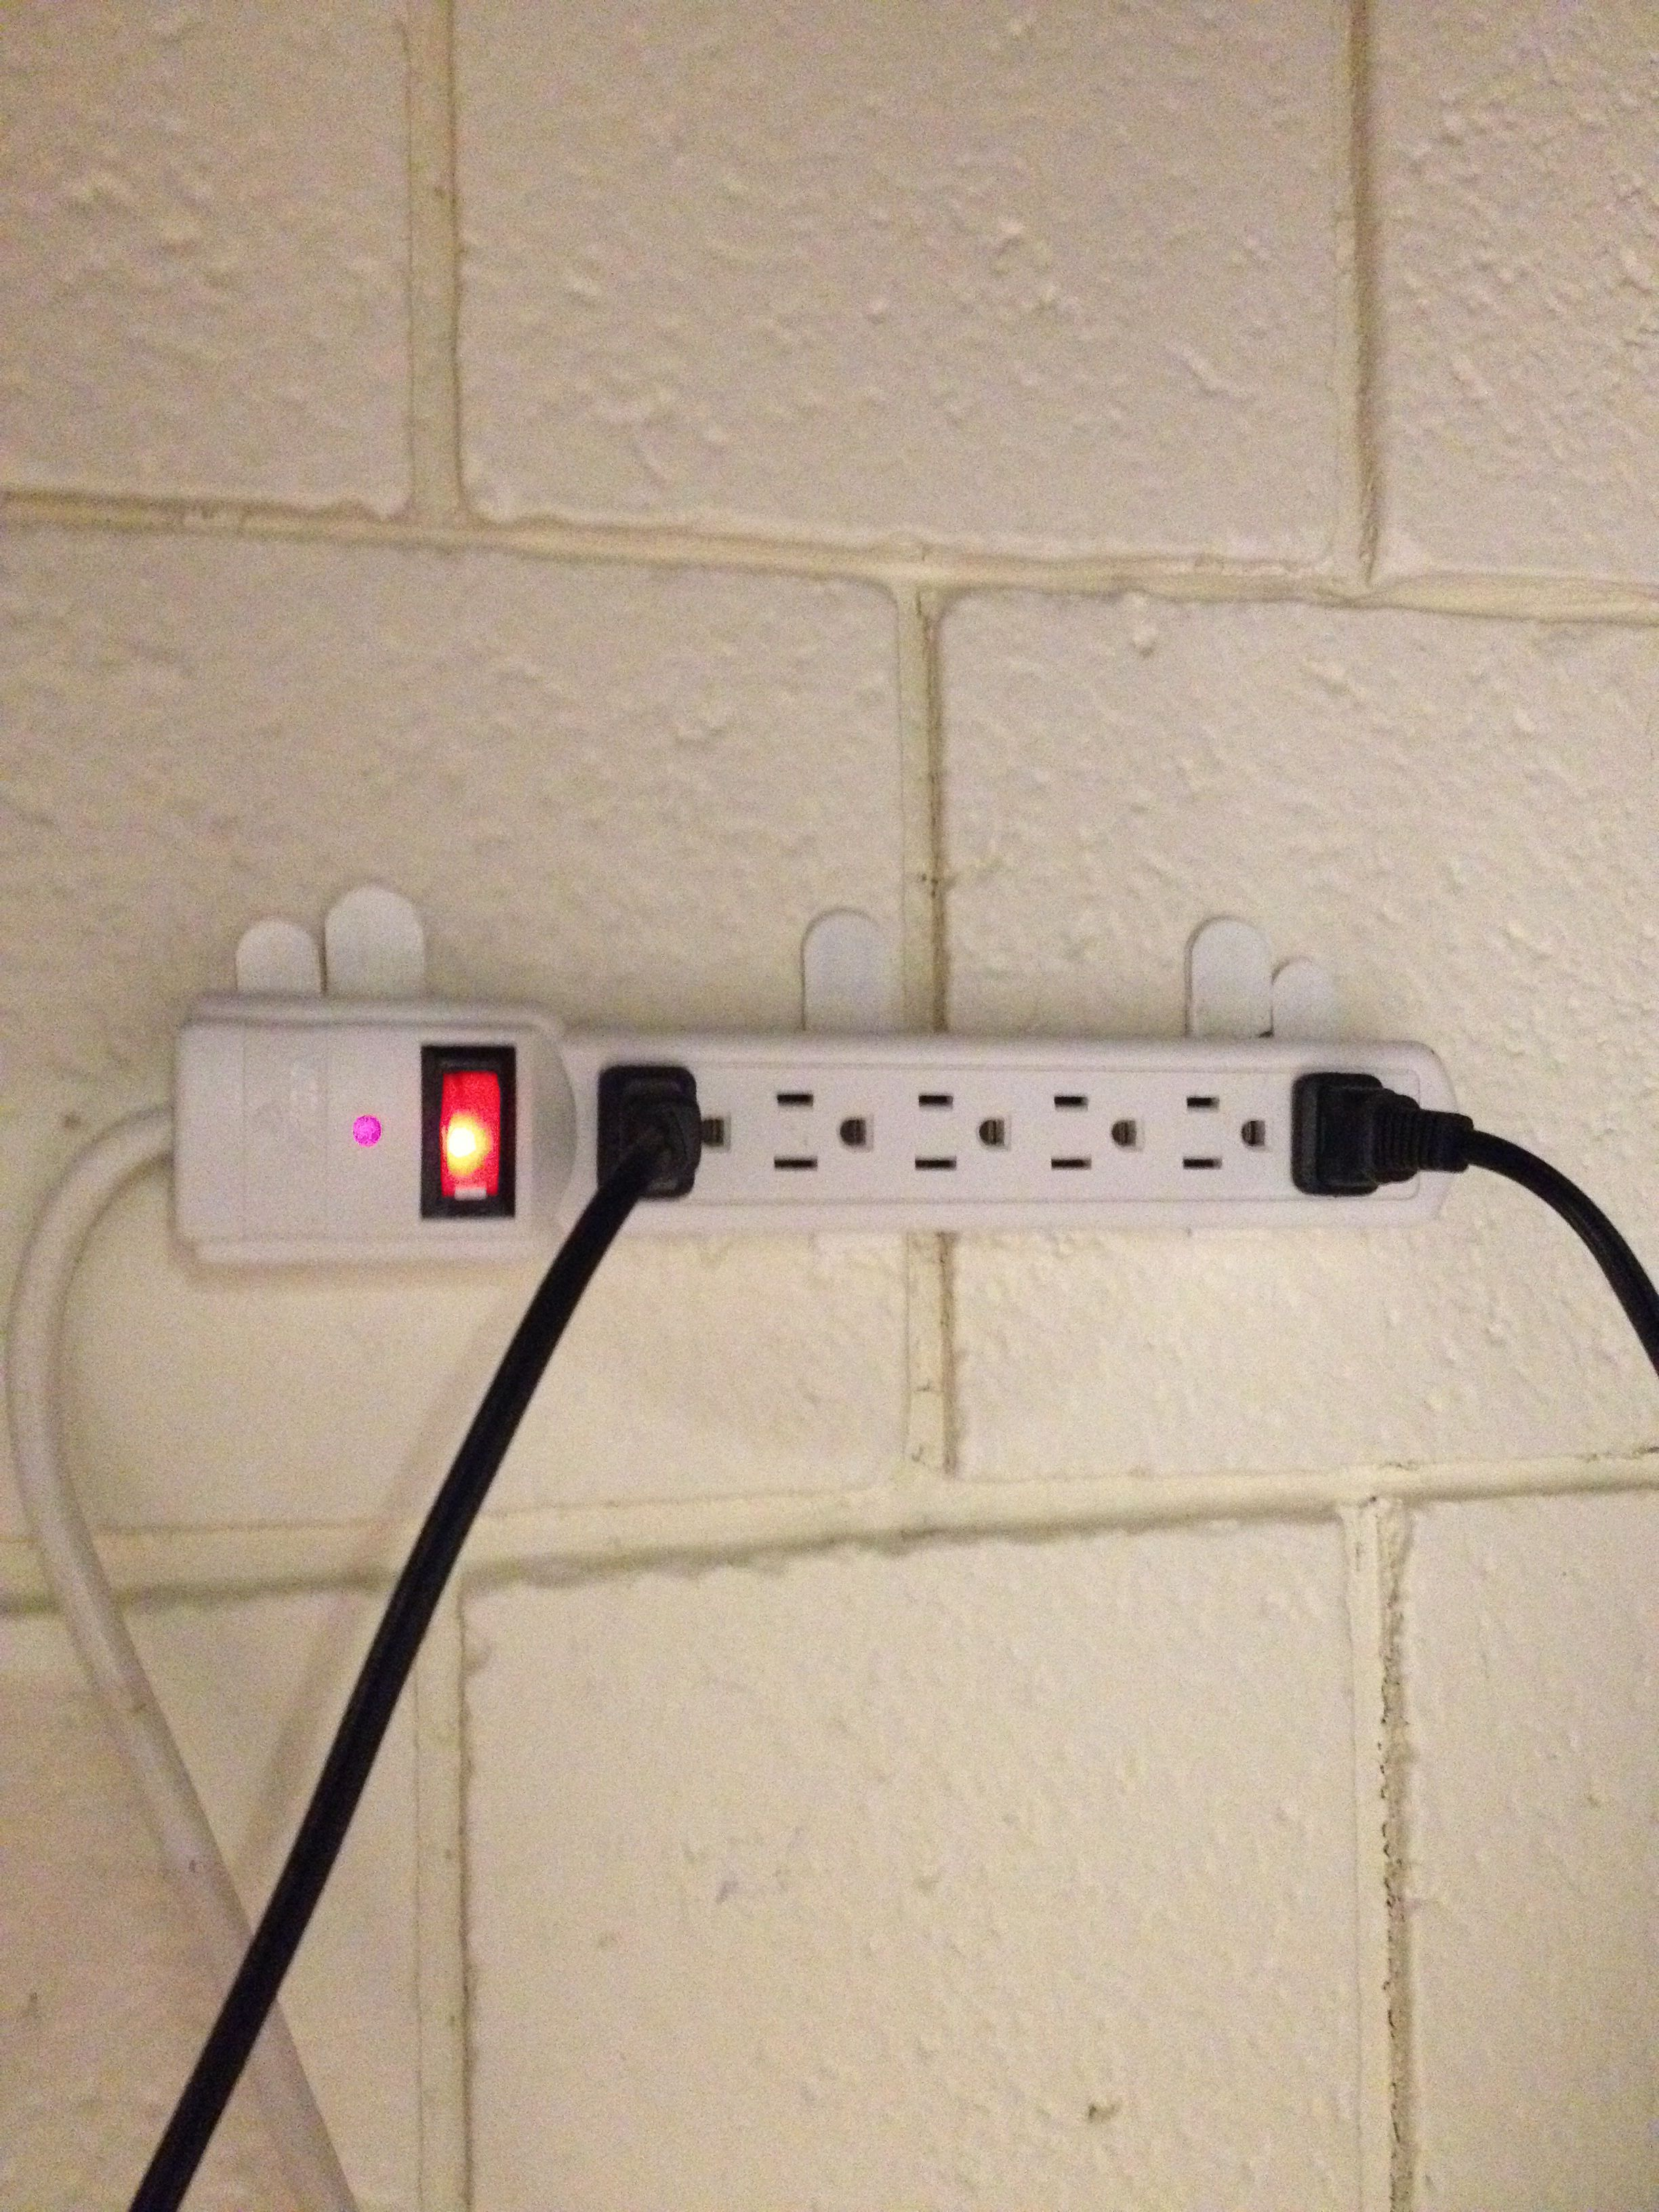 Command strips to mount power strips extremely useful in